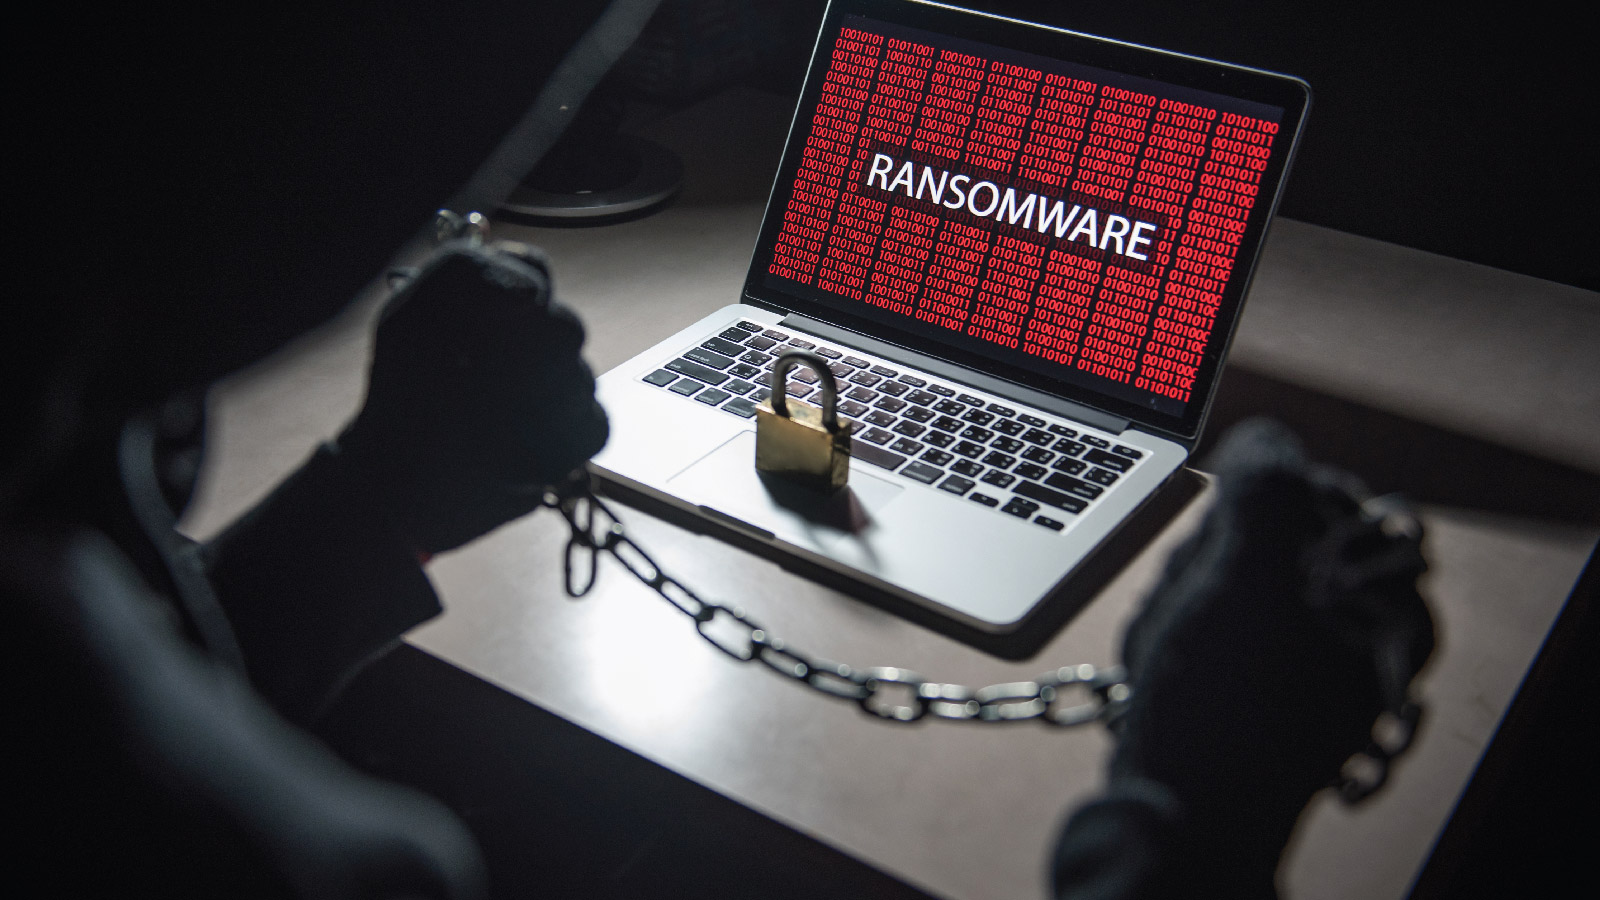 Cyber-attacks, Ransomware Attacks, Cyber-hackers, Cyber-criminals, Cyber-attackers, Ransomware, Data Security, crypto miners, keyloggers, financial Trojan, IT, Malwarebytes, Bitcoin, Healthcare, Petya/Not Petya